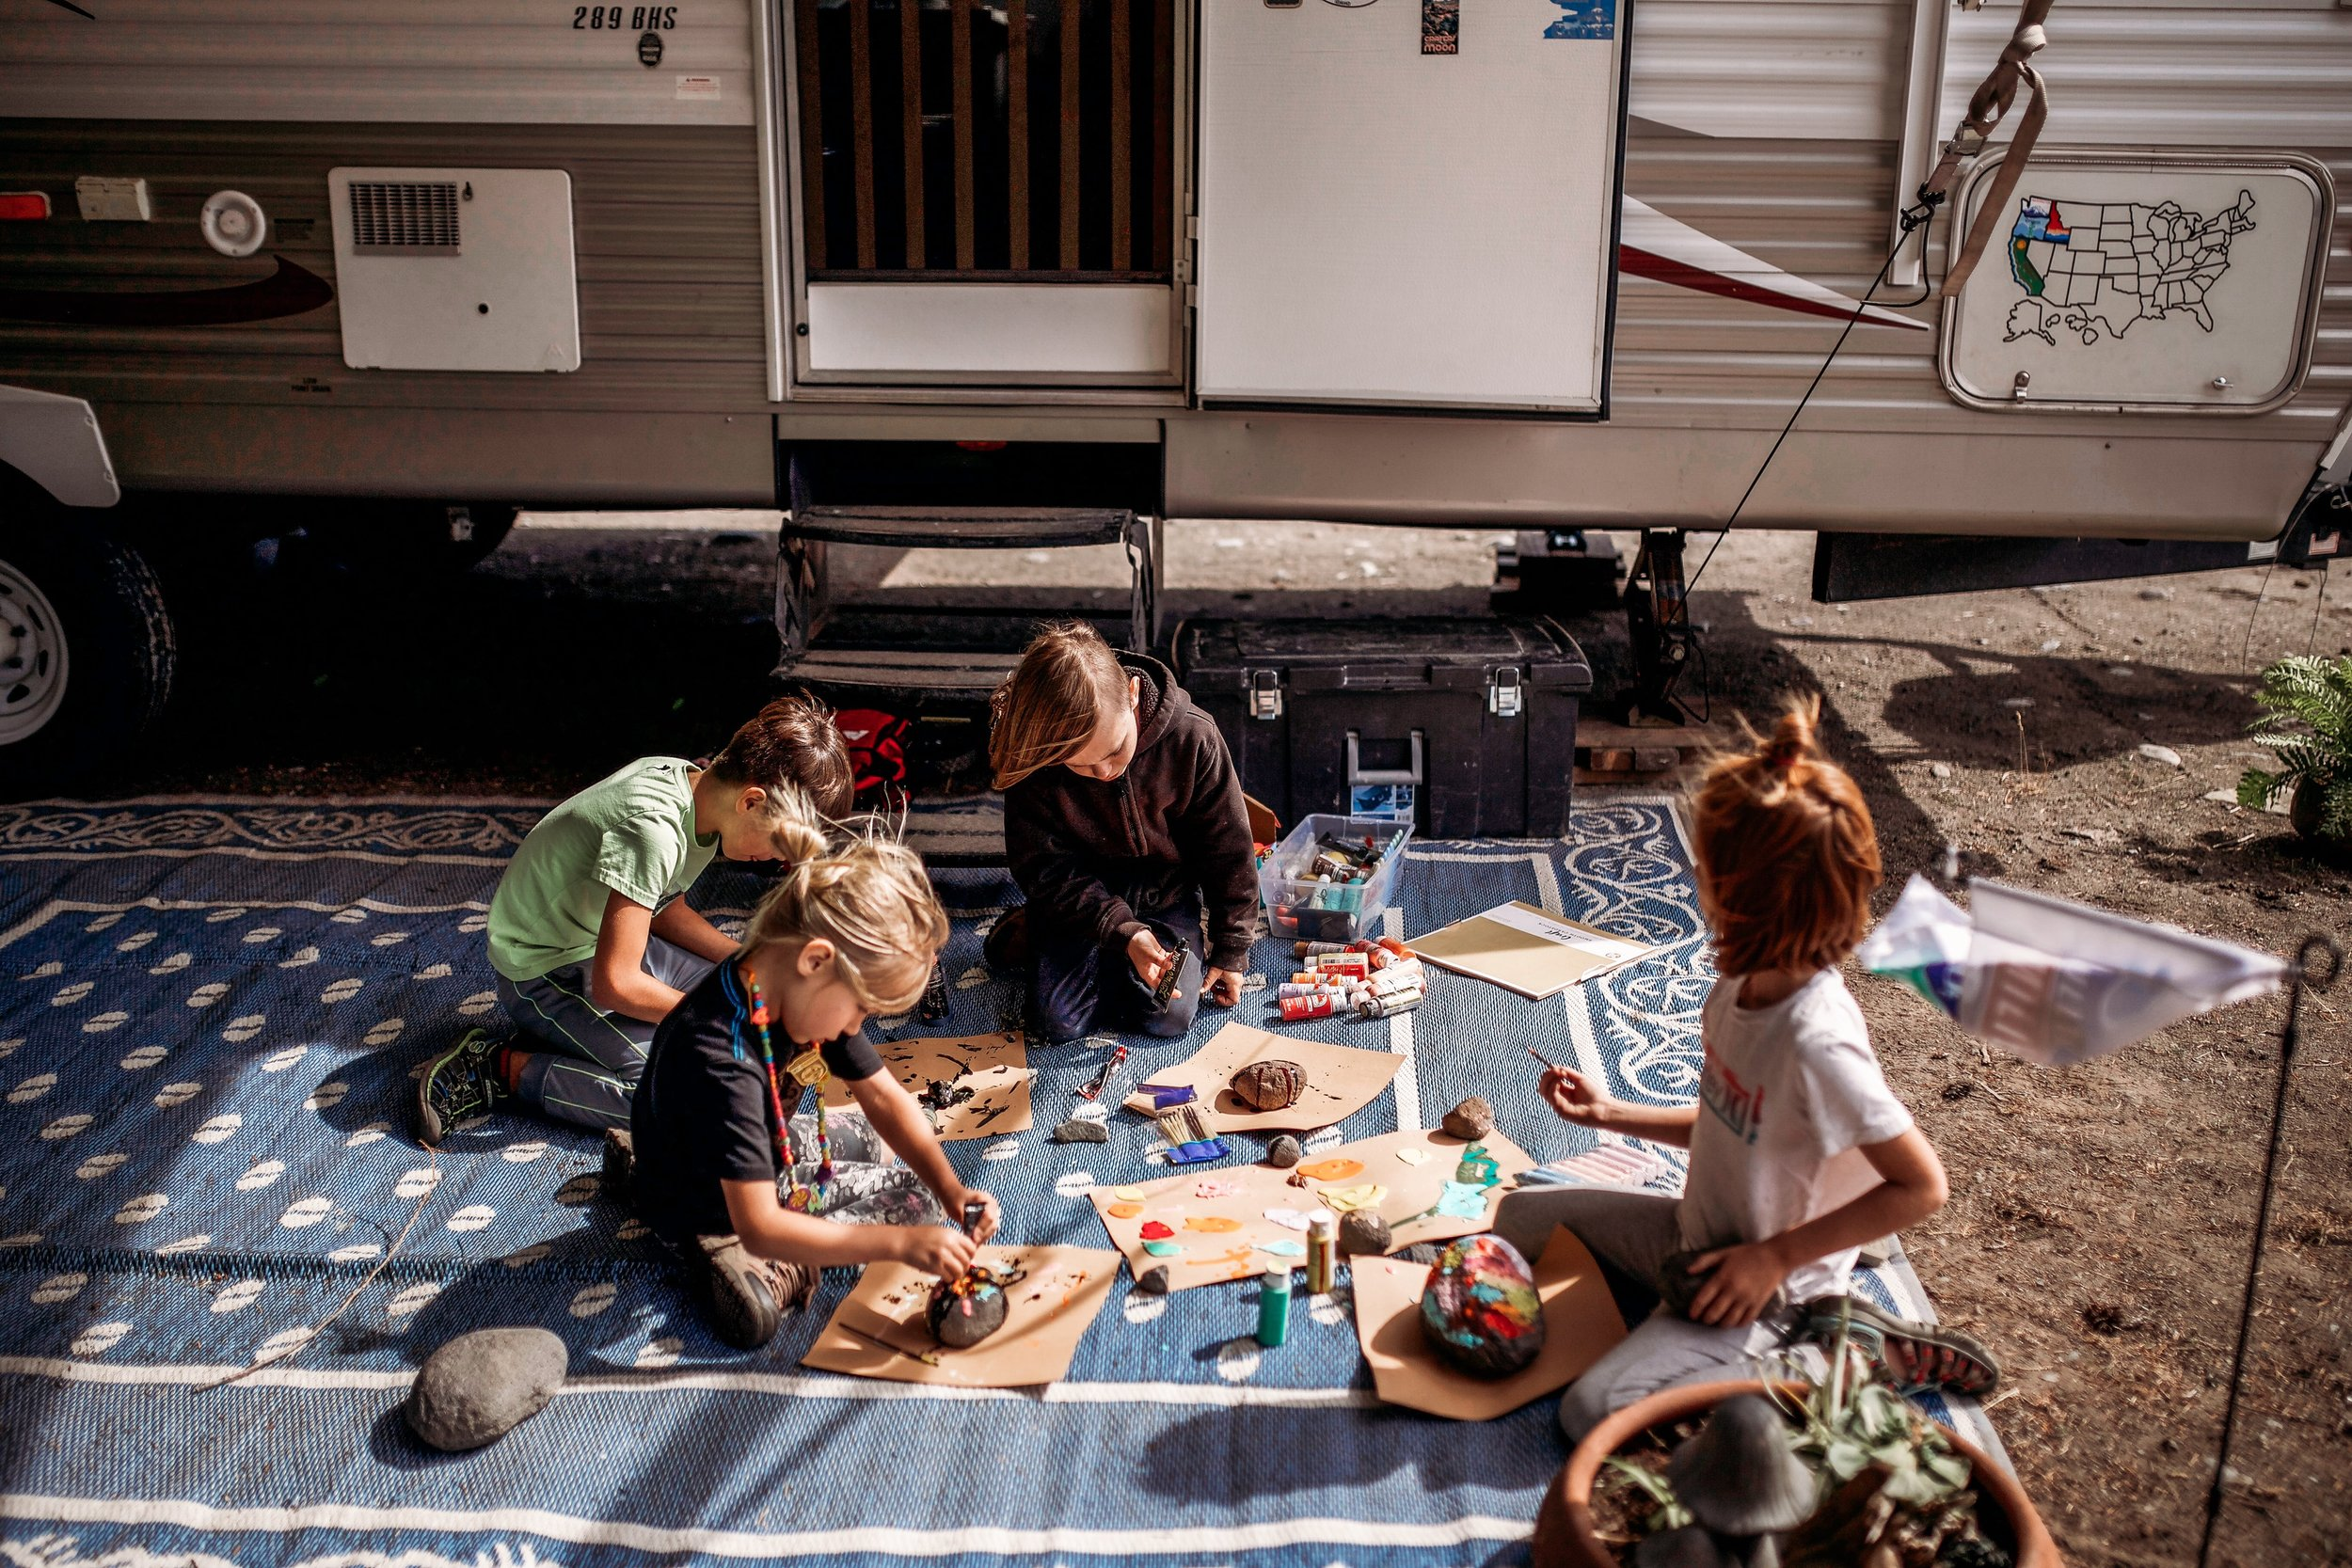 3. ATTEND CAMPGROUND ACTIVITIES -